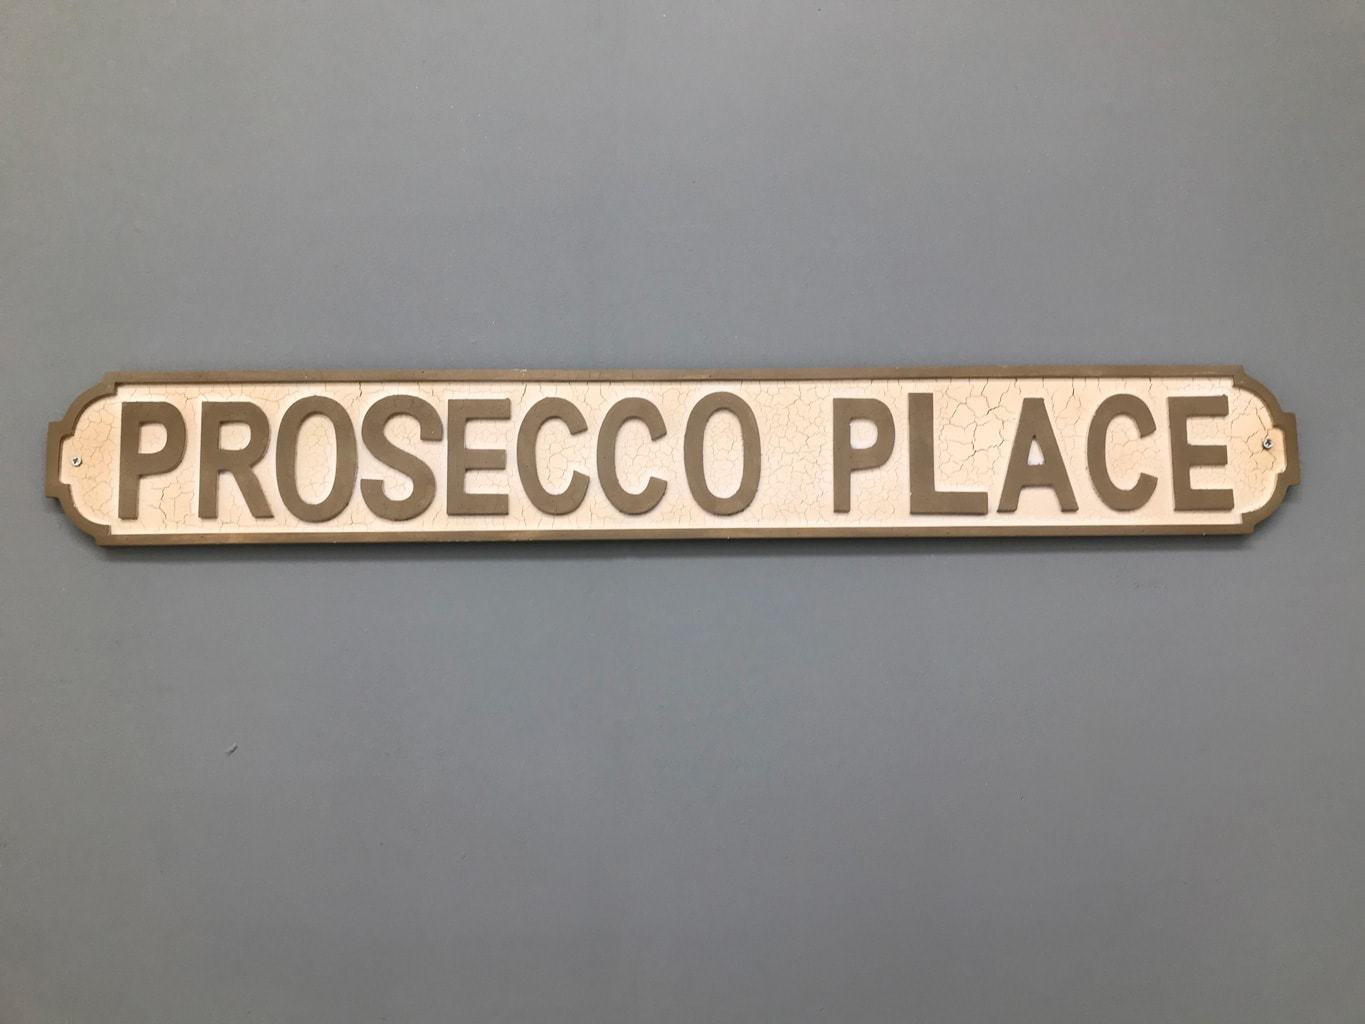 Prosecco Place Street Sign